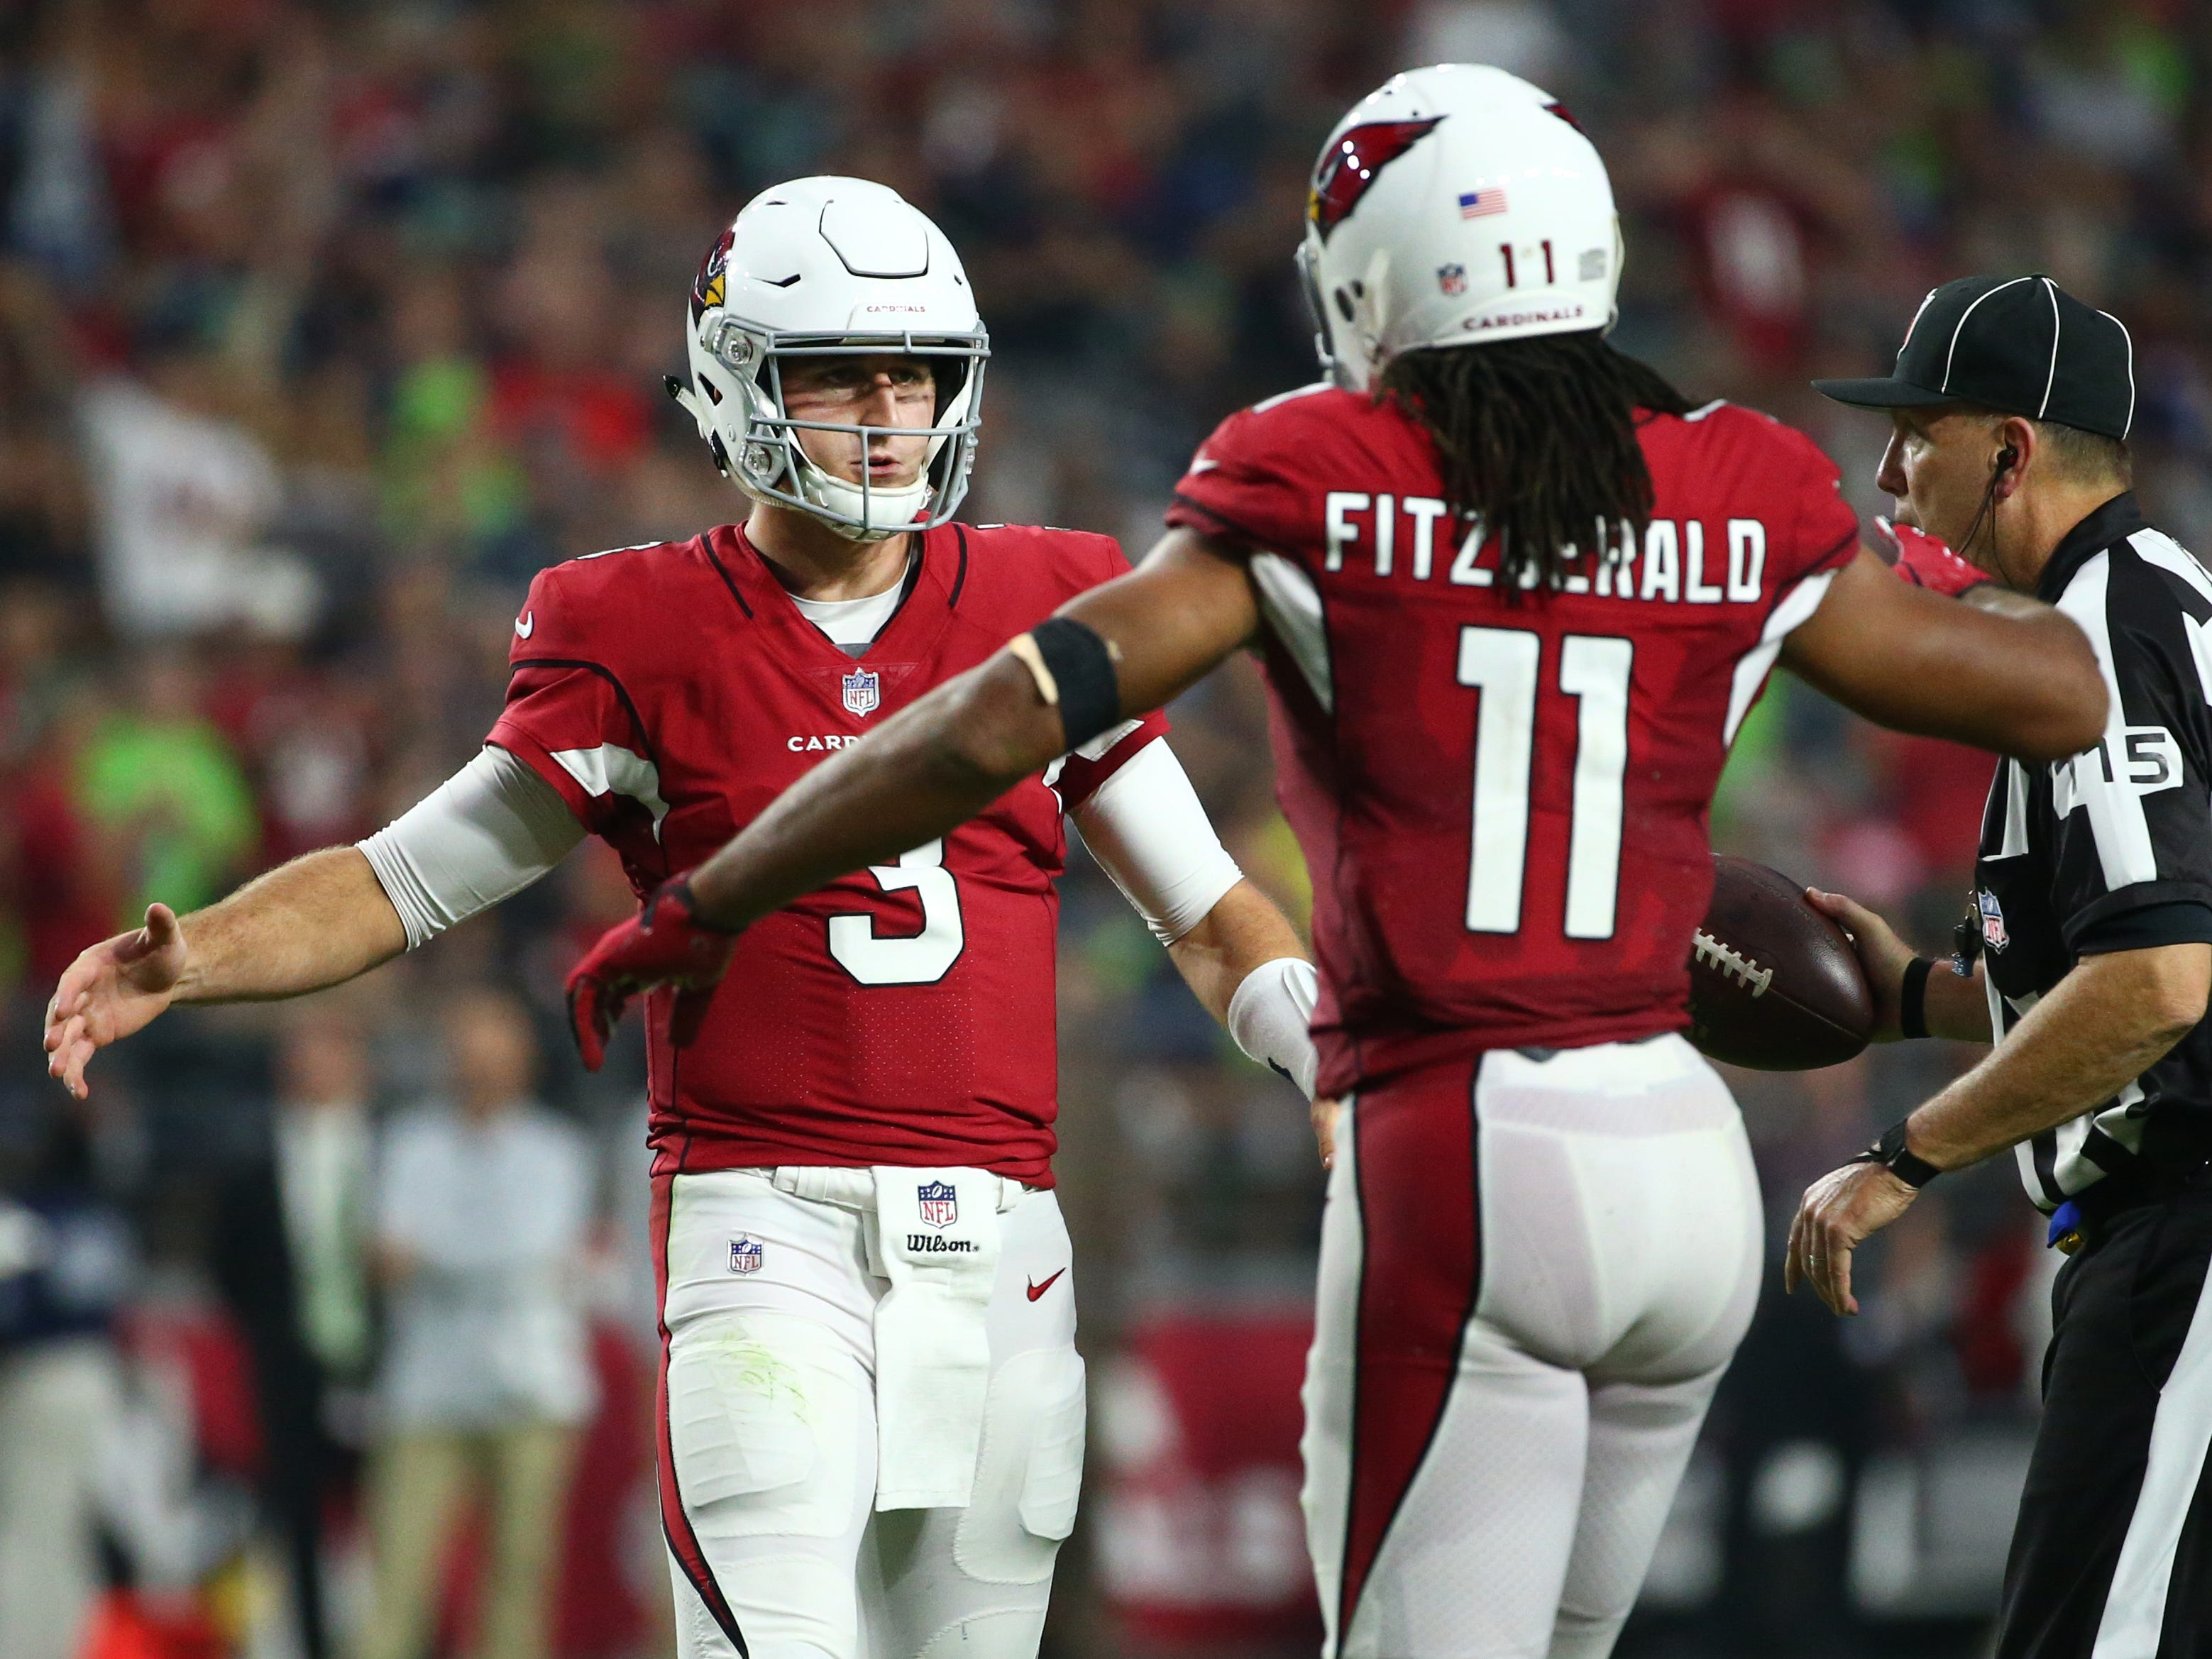 Arizona Cardinals quarterback Josh Rosin and Larry Fitzgerald react after a pass completion against the Seattle Seahawks in the first half at State Farm Stadium in Glendale, Ariz.